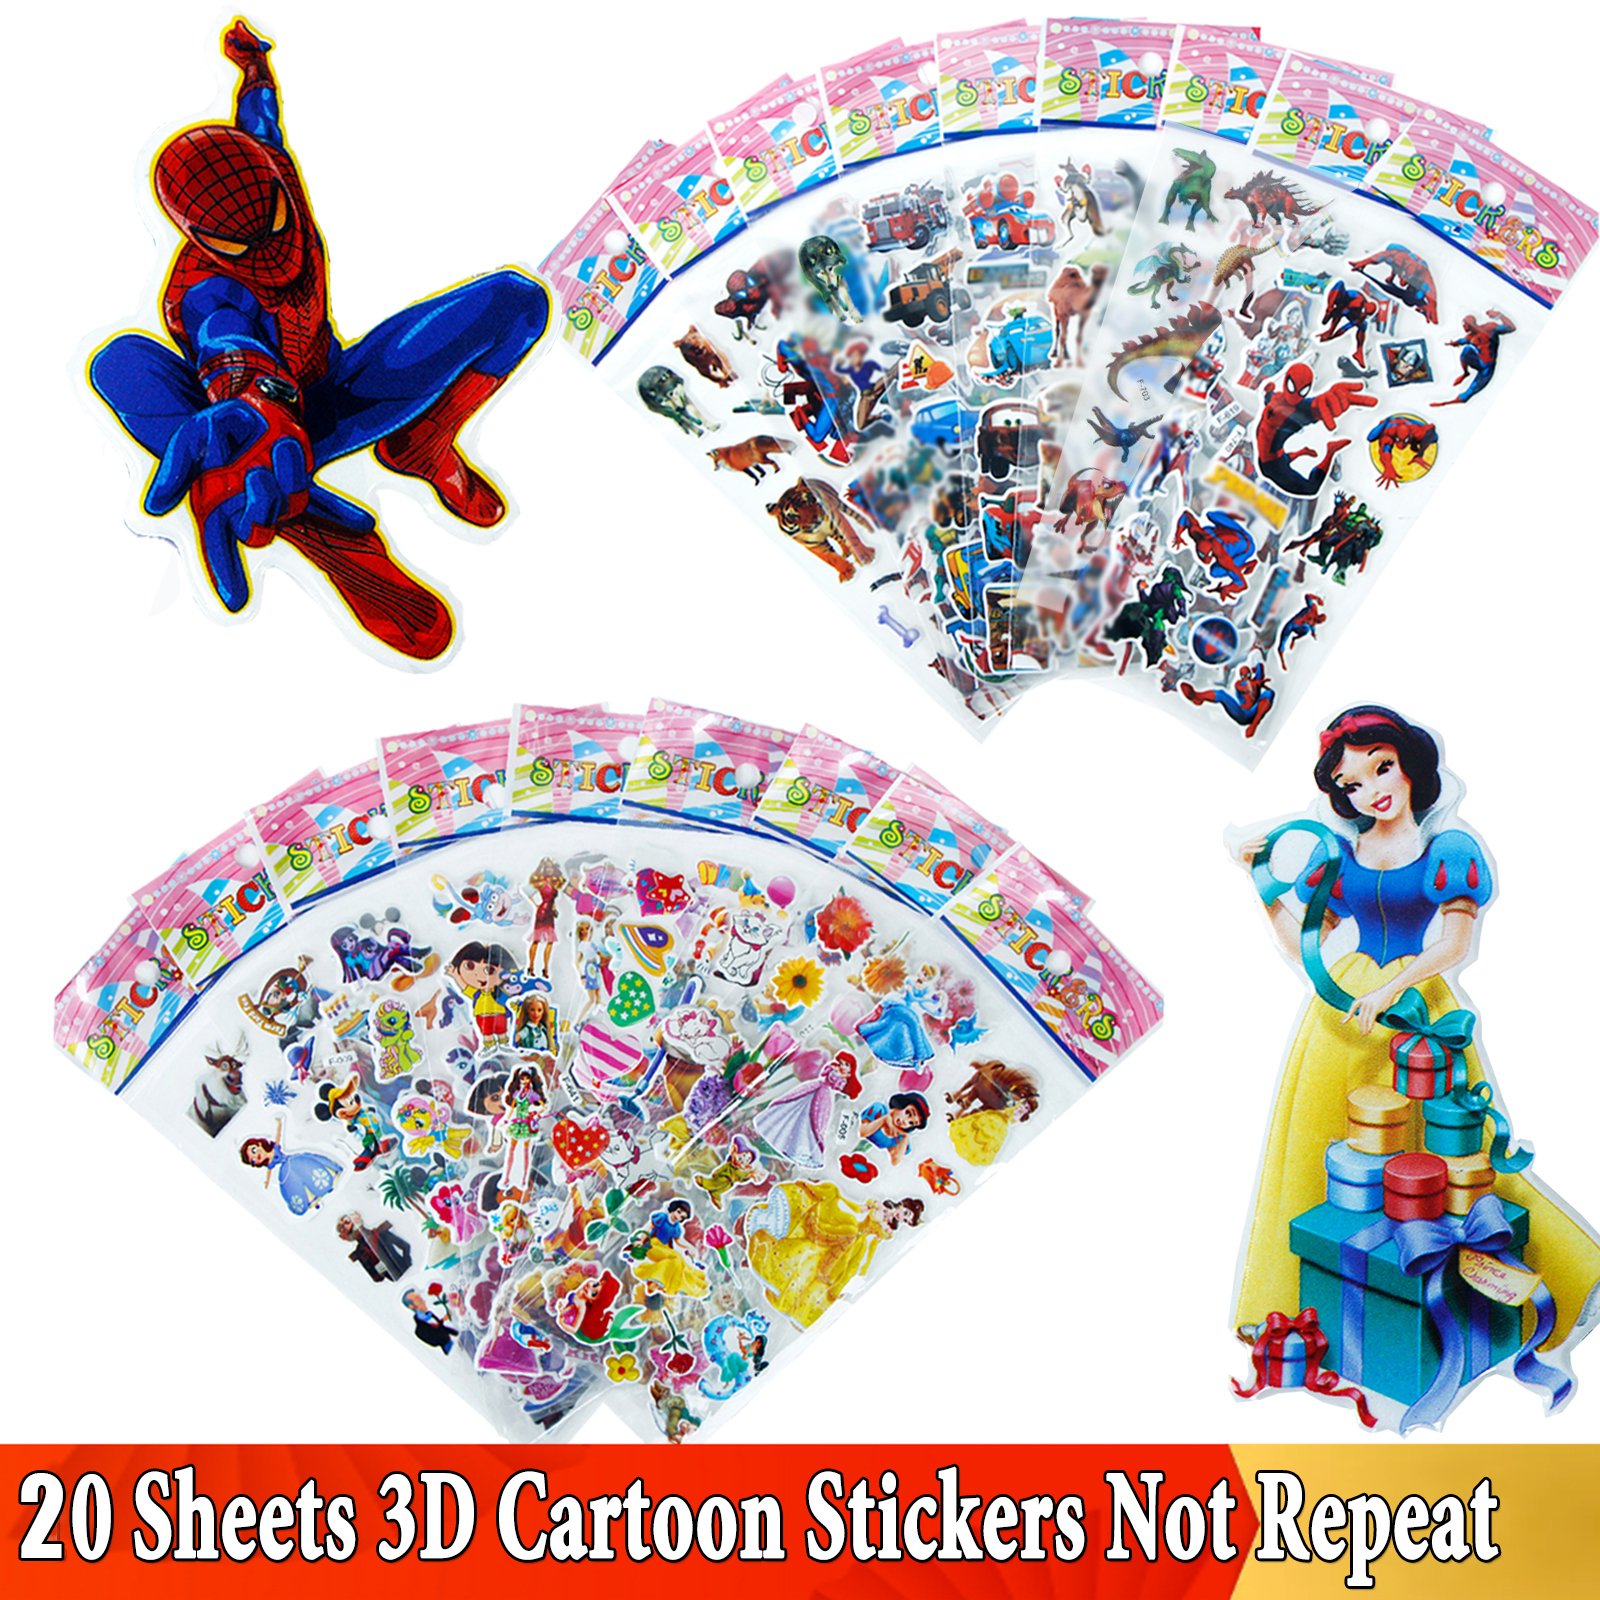 20 Different Sheets 3D Puffy Bulk Stickers For Girl Boy Princess Birthday Gift Scrapbooking Teachers Animals Cartoon Sticker